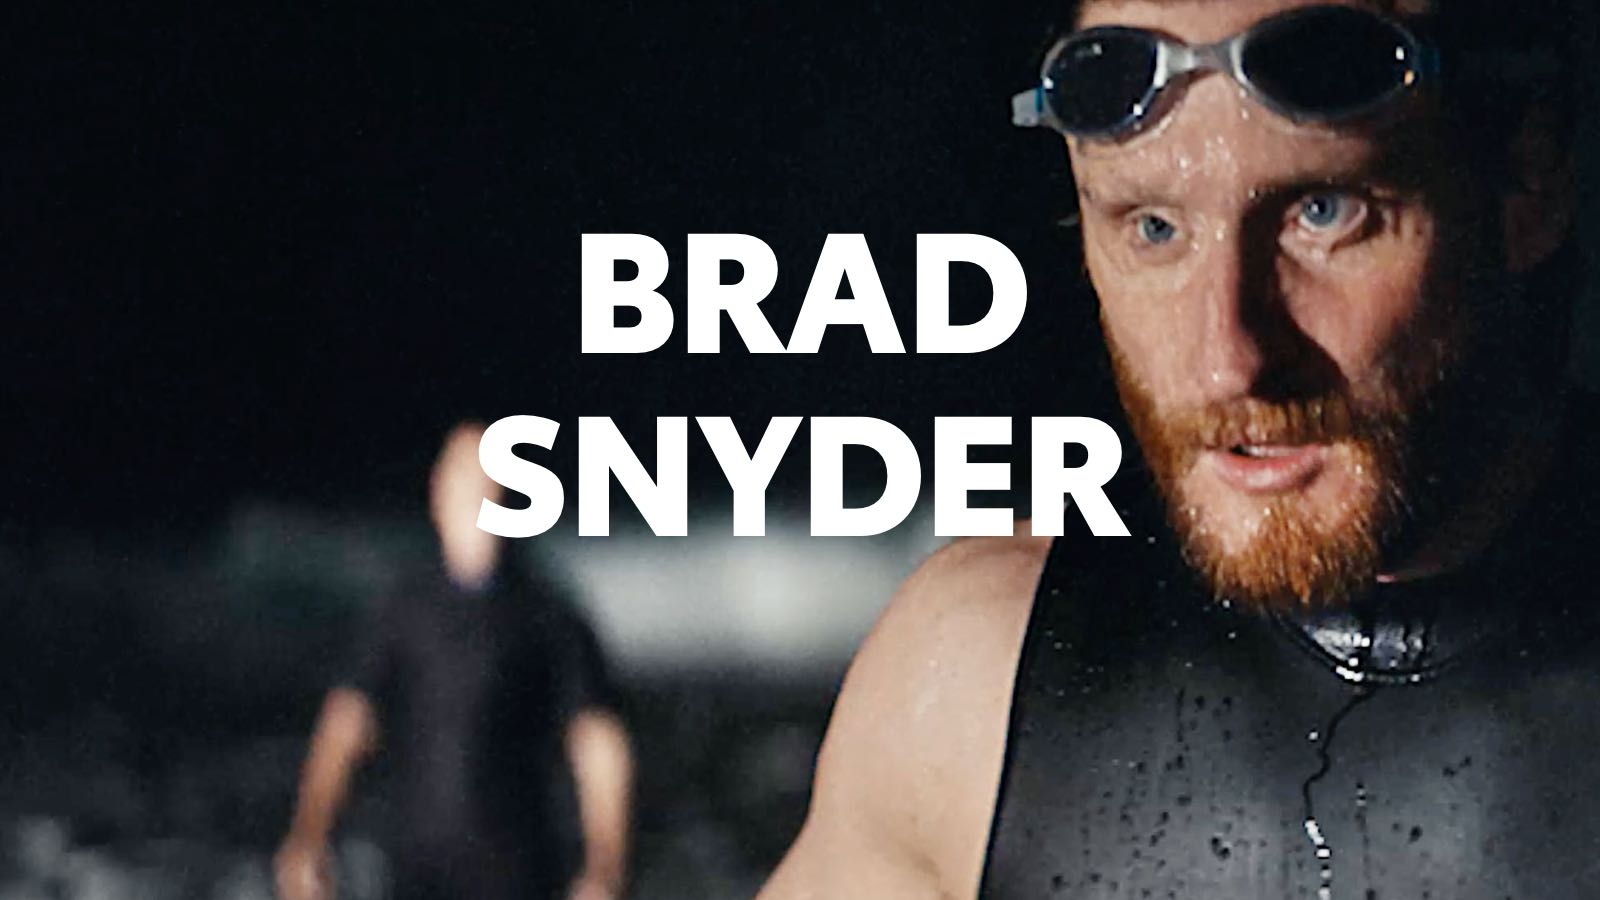 Although he lost his sight in battle, Brad Snyder directs his eyes up and away as if looking toward a podium with his goggles on his forehead.